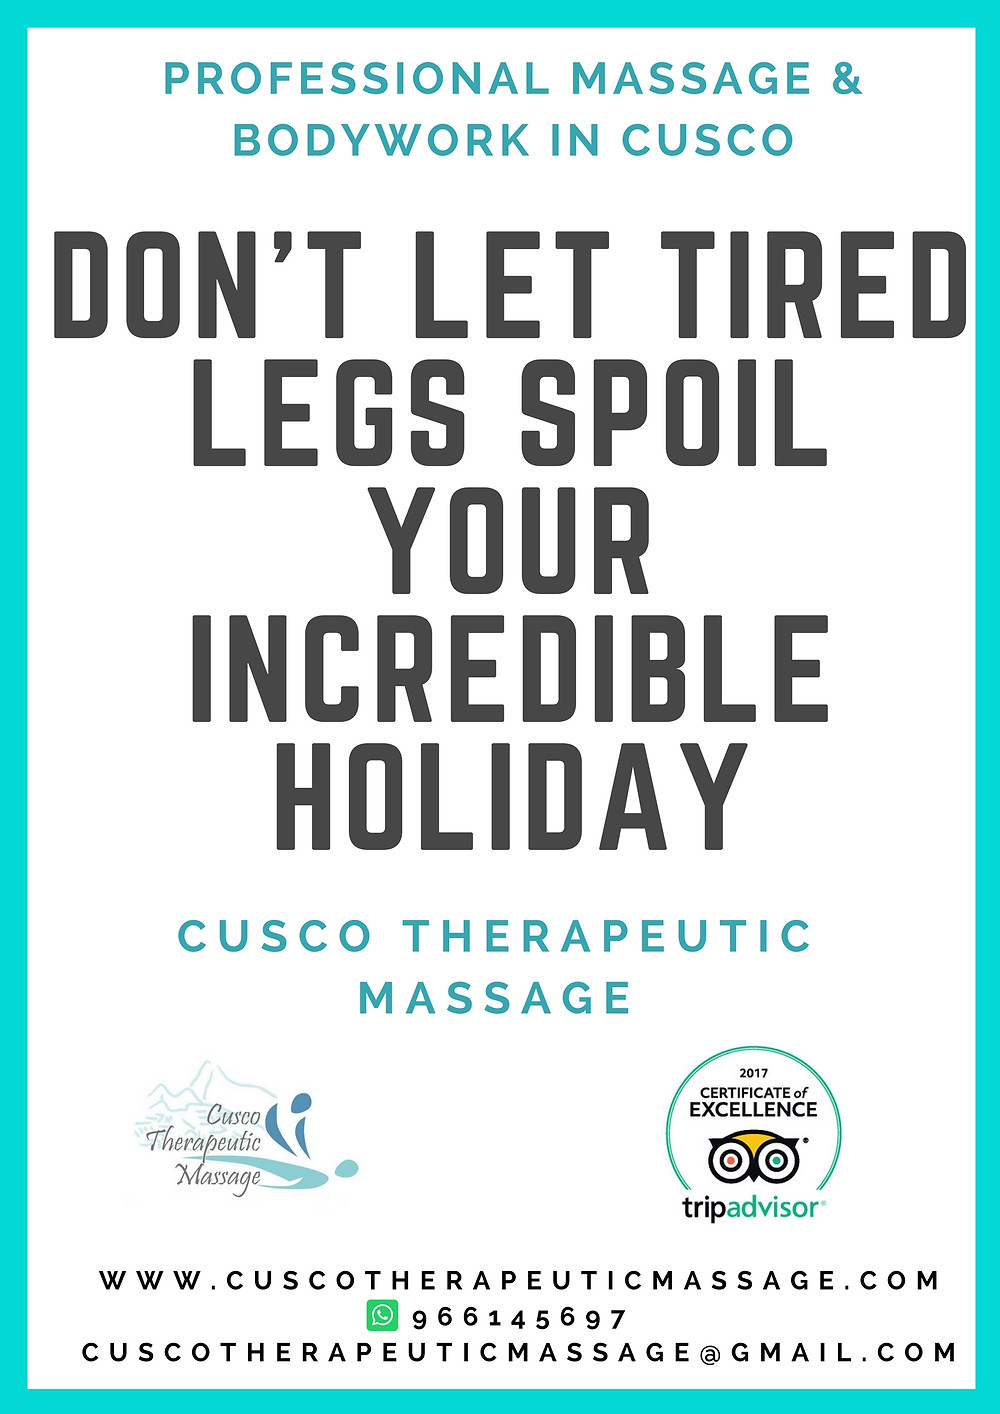 Sore legs after trekking in Cusco?